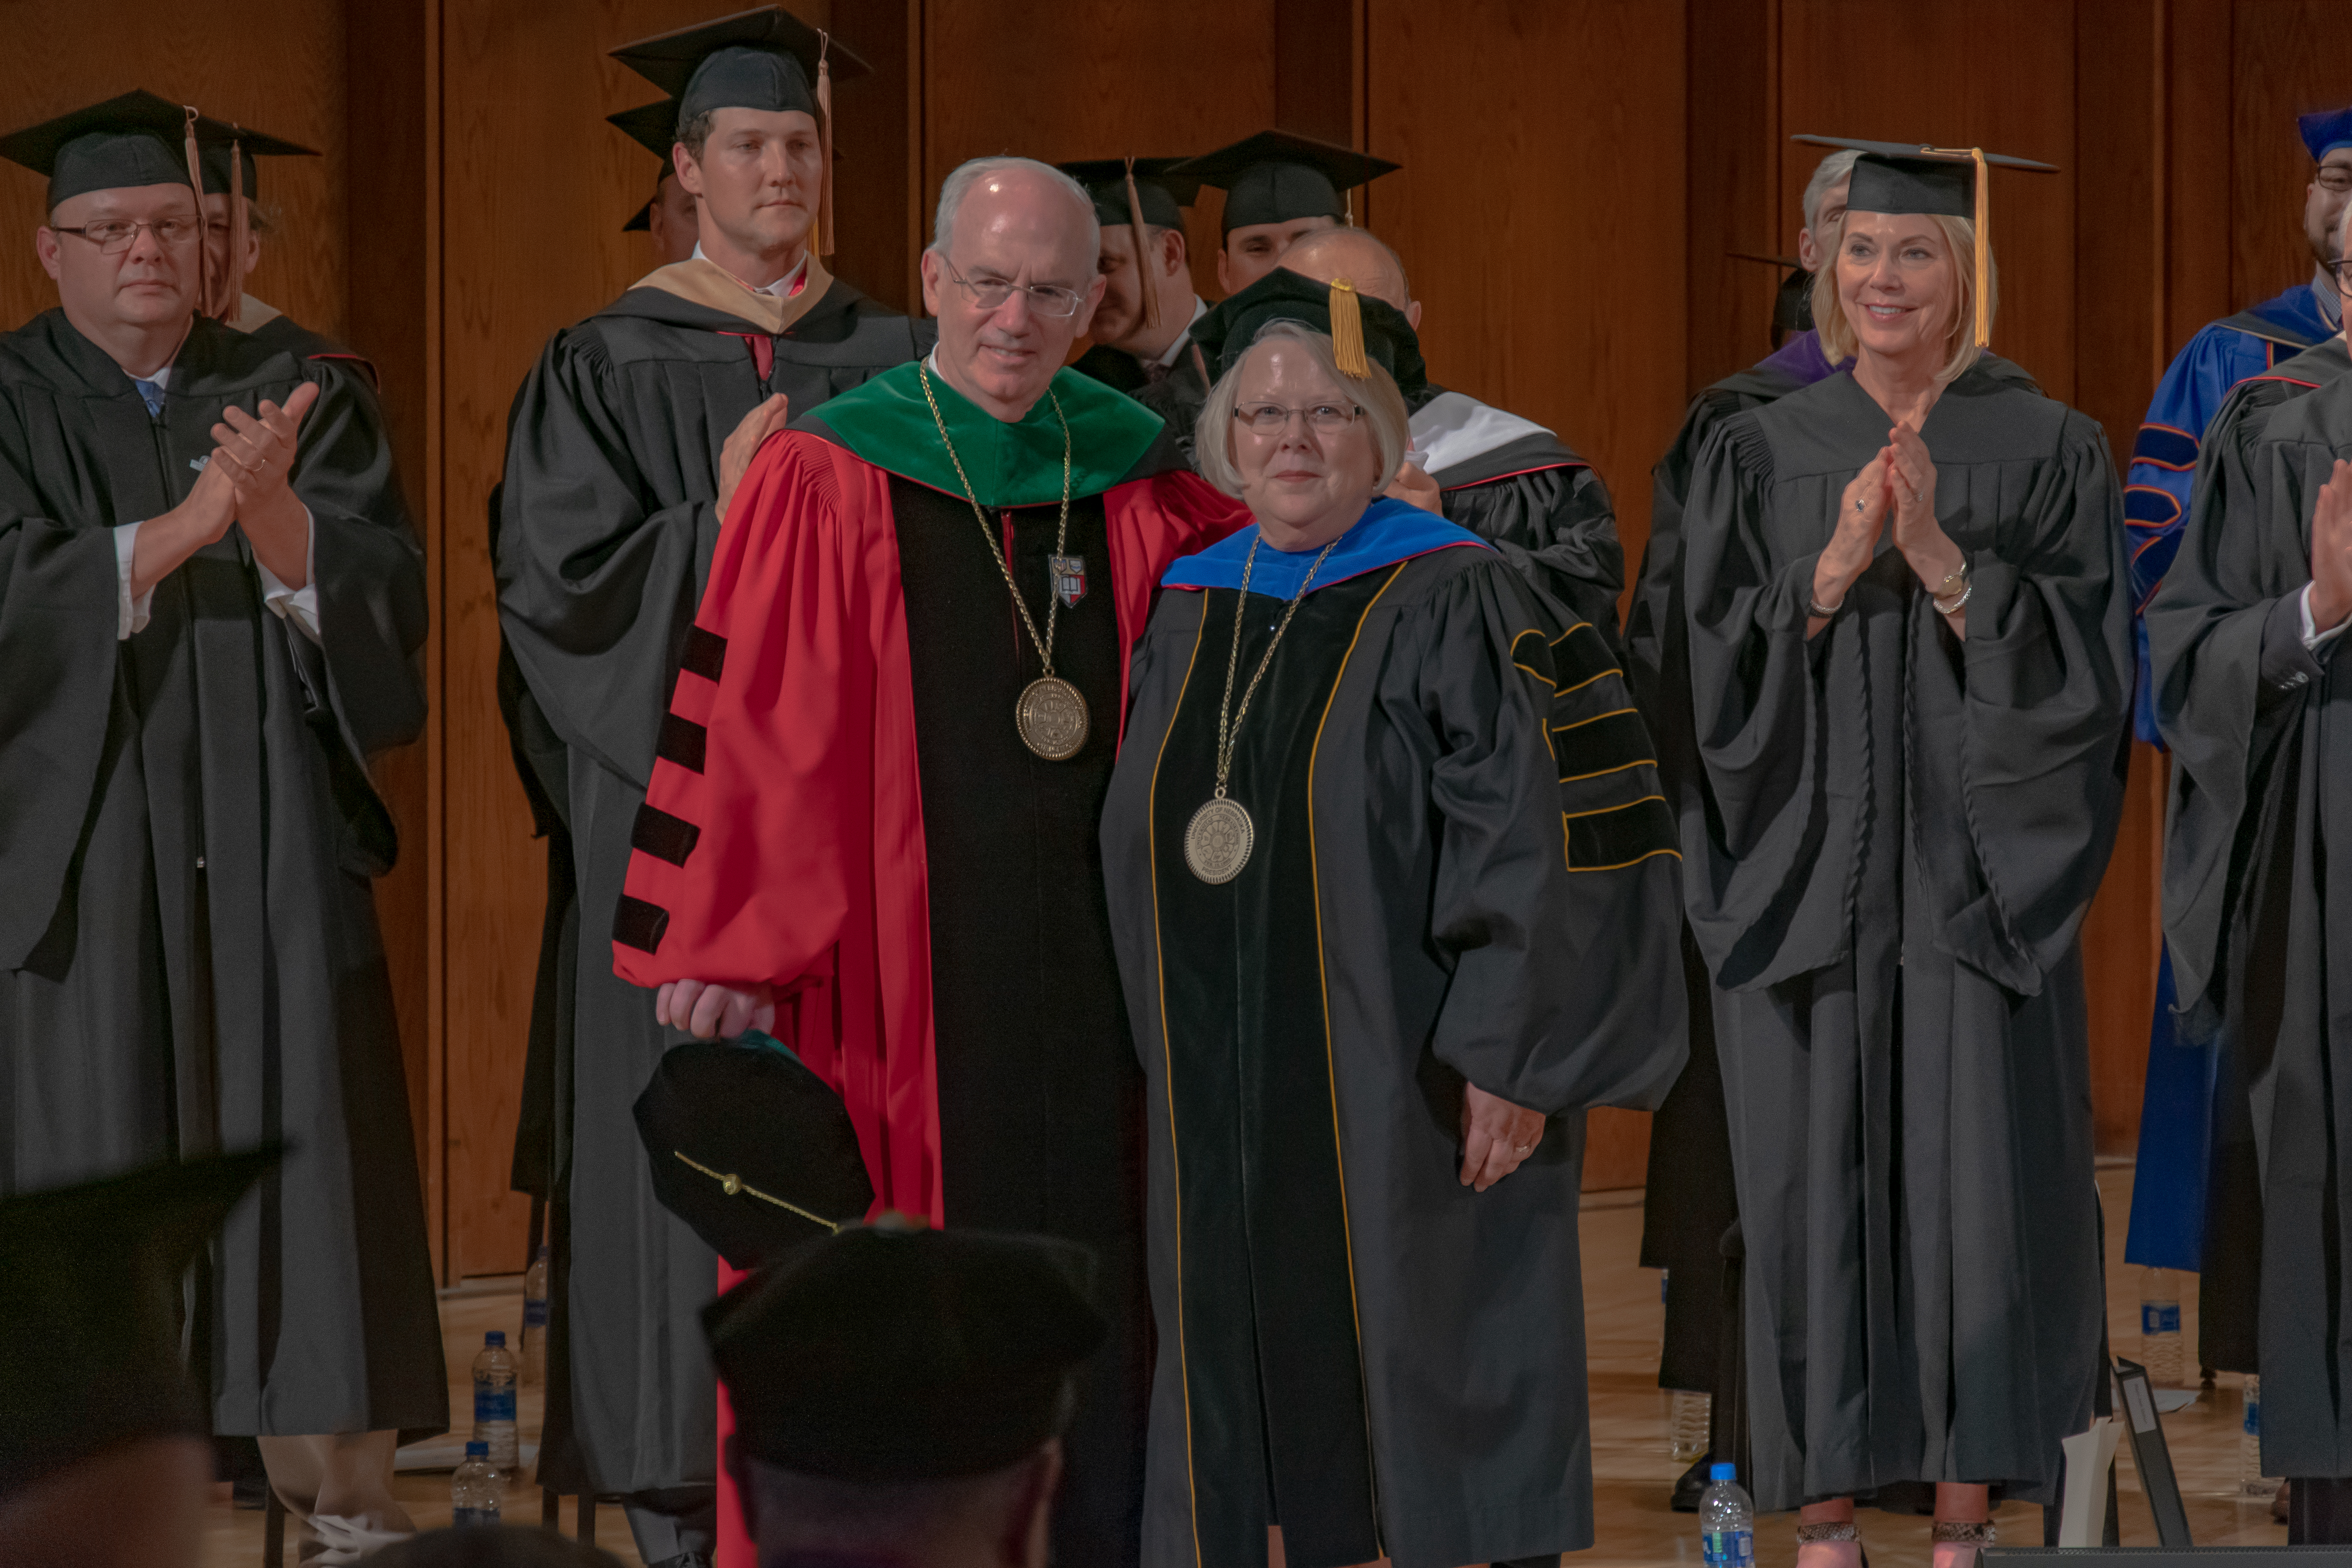 UNO Chancellor Gold and President Fritz are seen standing at Chancellor Gold's investiture.